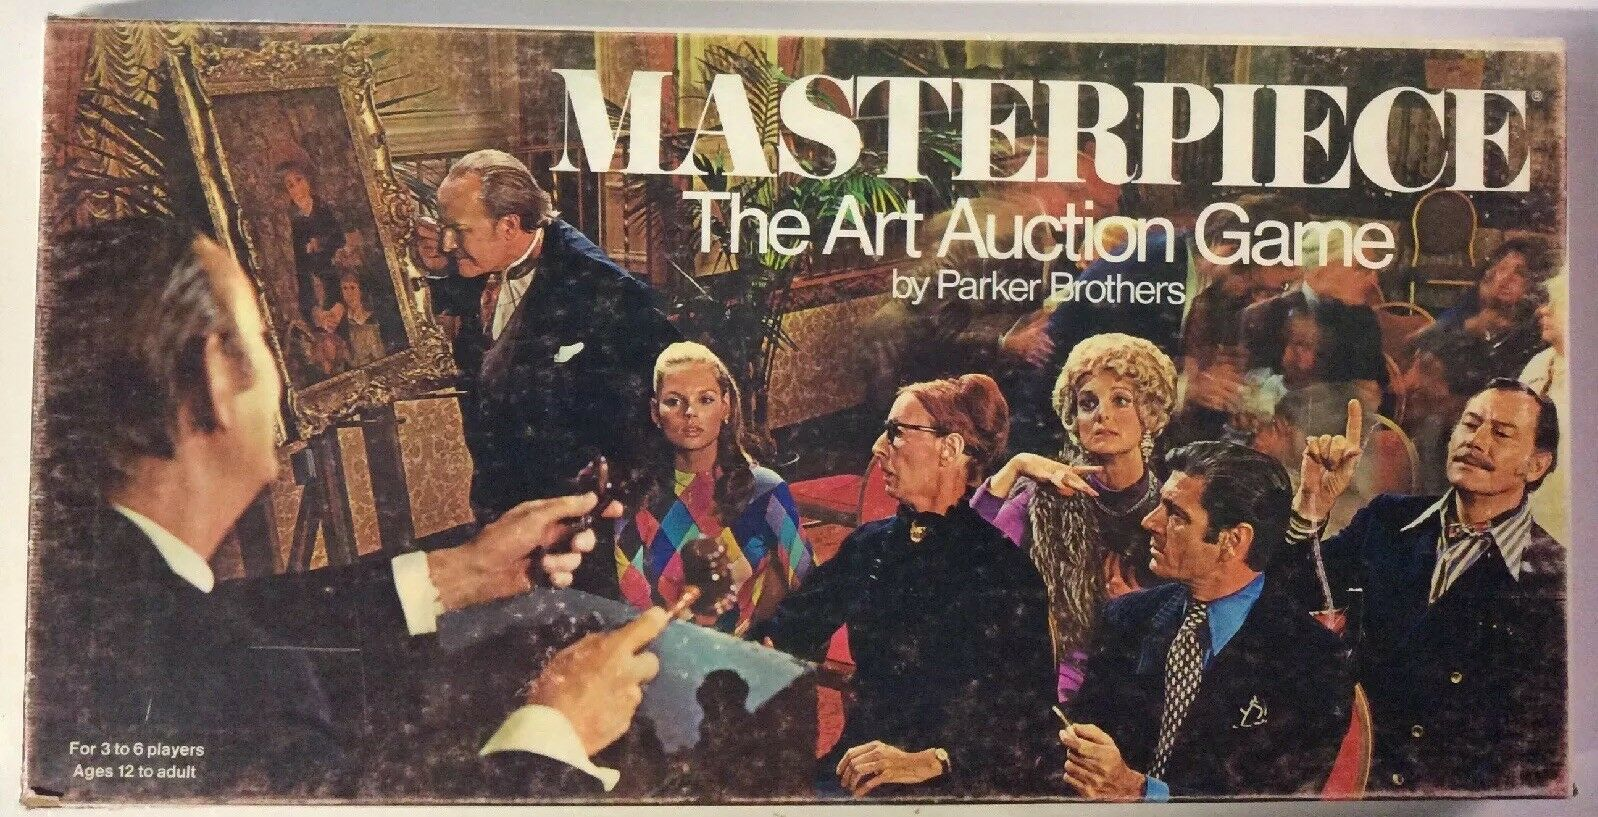 Masterpiece The Art Auction Game By Parker Brossohers (rare Vintage, 1970)